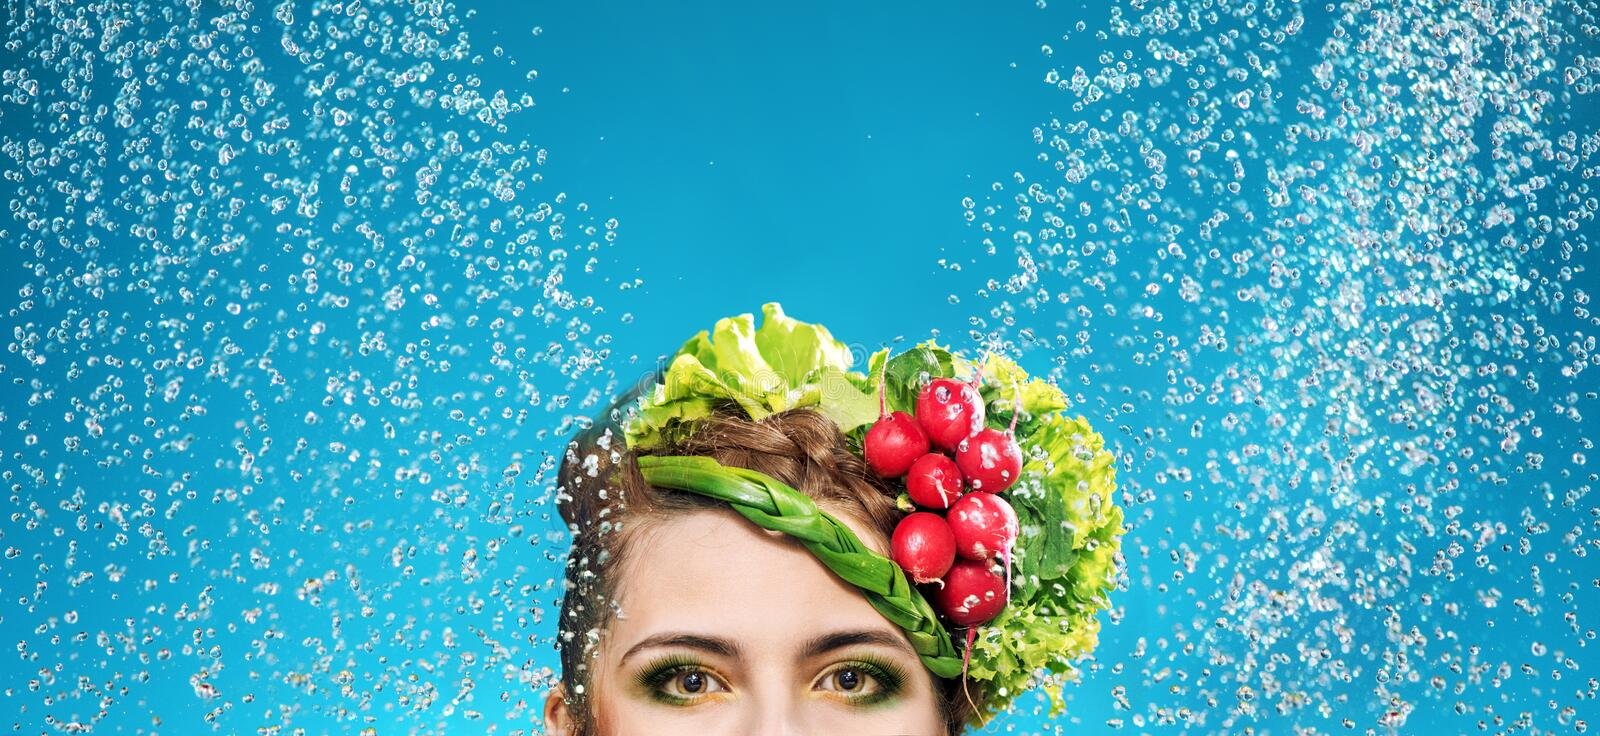 Portrait of a lady with vegetables on head stock photo